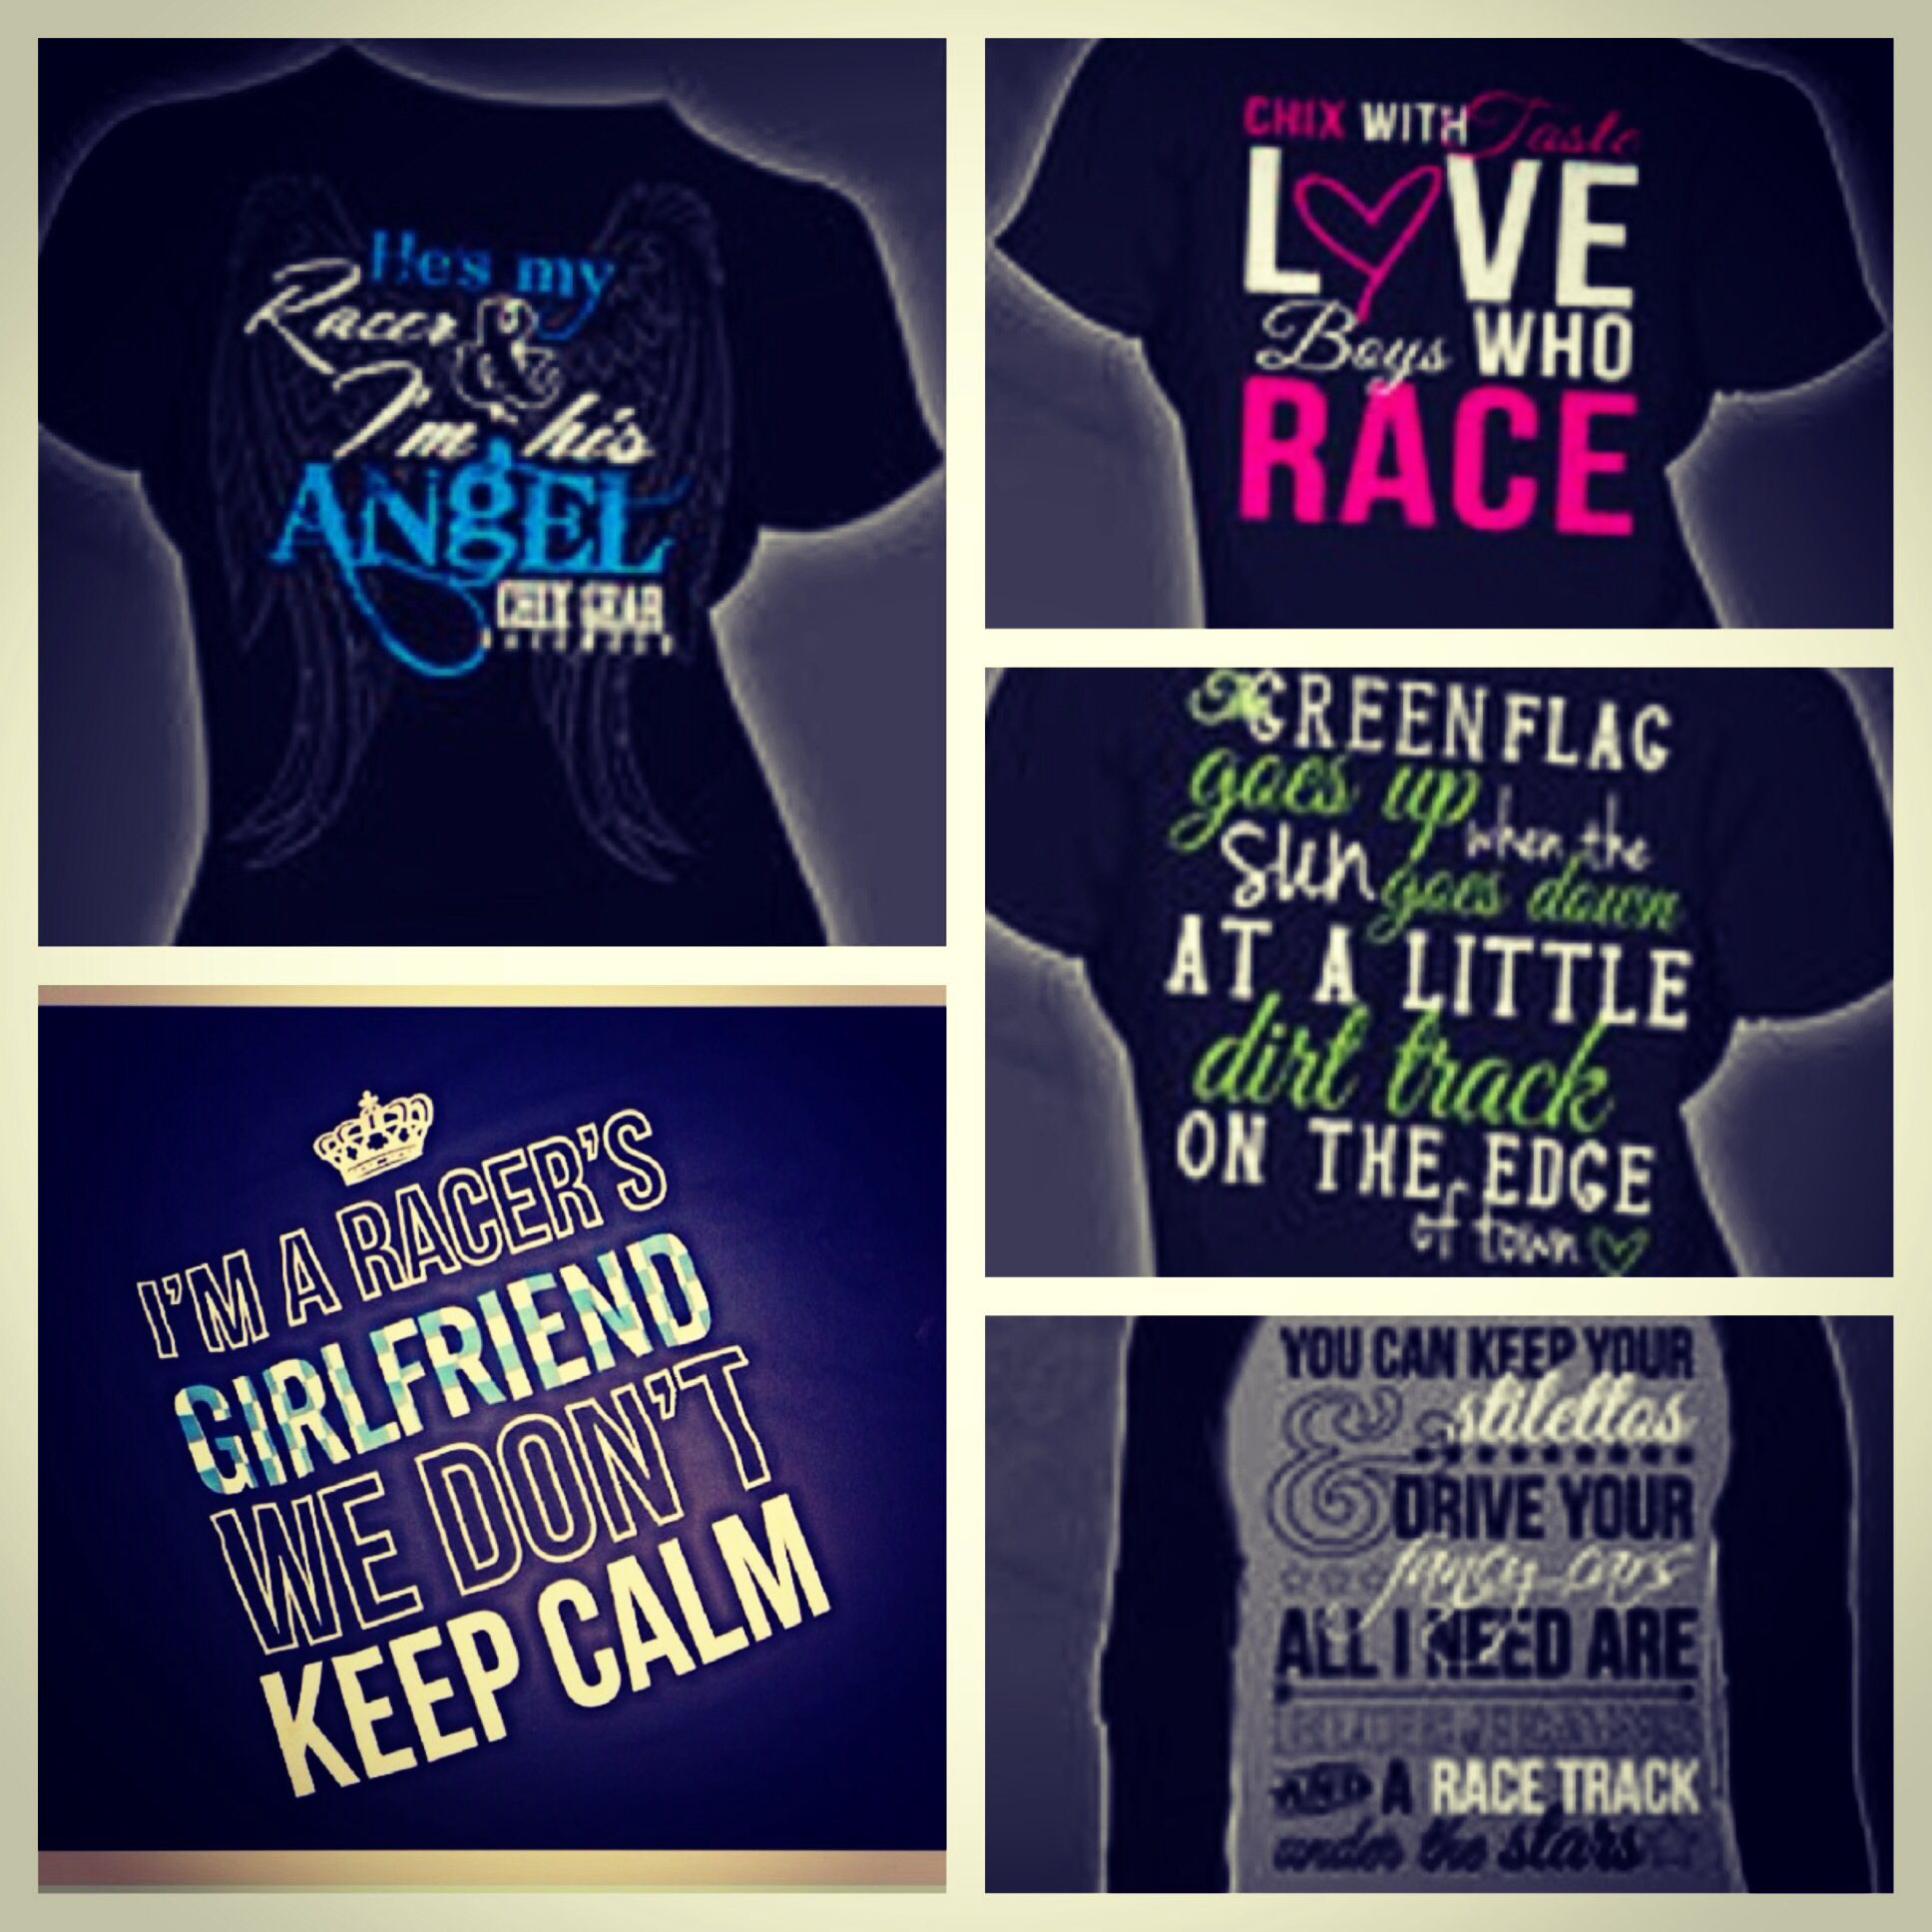 Design t shirt motocross - Just Awaiting The Last Two Thanks Chix Gear Race Wear For My Race Apparel Needs